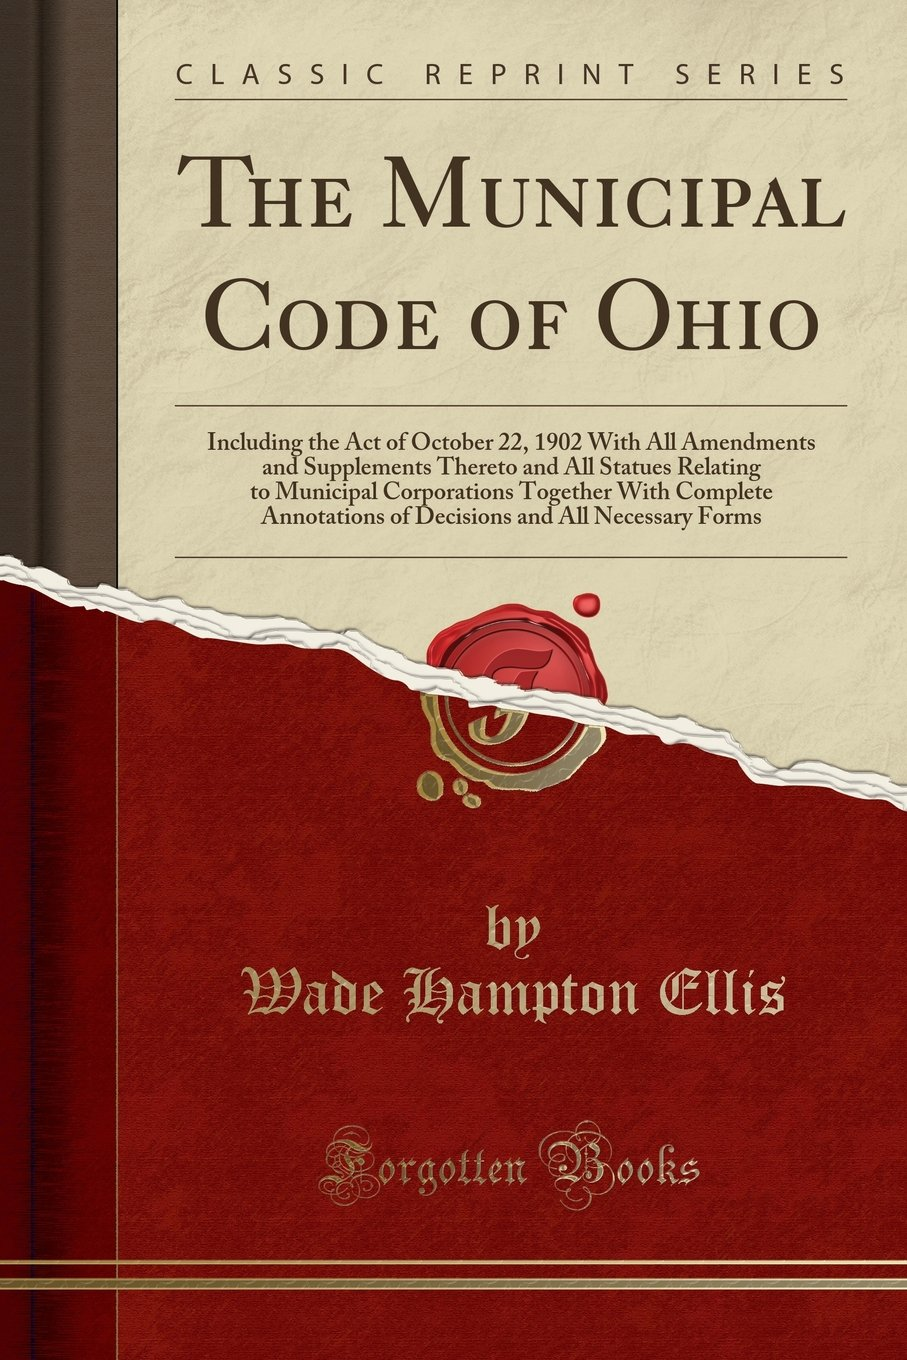 Read Online The Municipal Code of Ohio: Including the Act of October 22, 1902 With All Amendments and Supplements Thereto and All Statues Relating to Municipal ... and All Necessary Forms (Classic Reprint) pdf